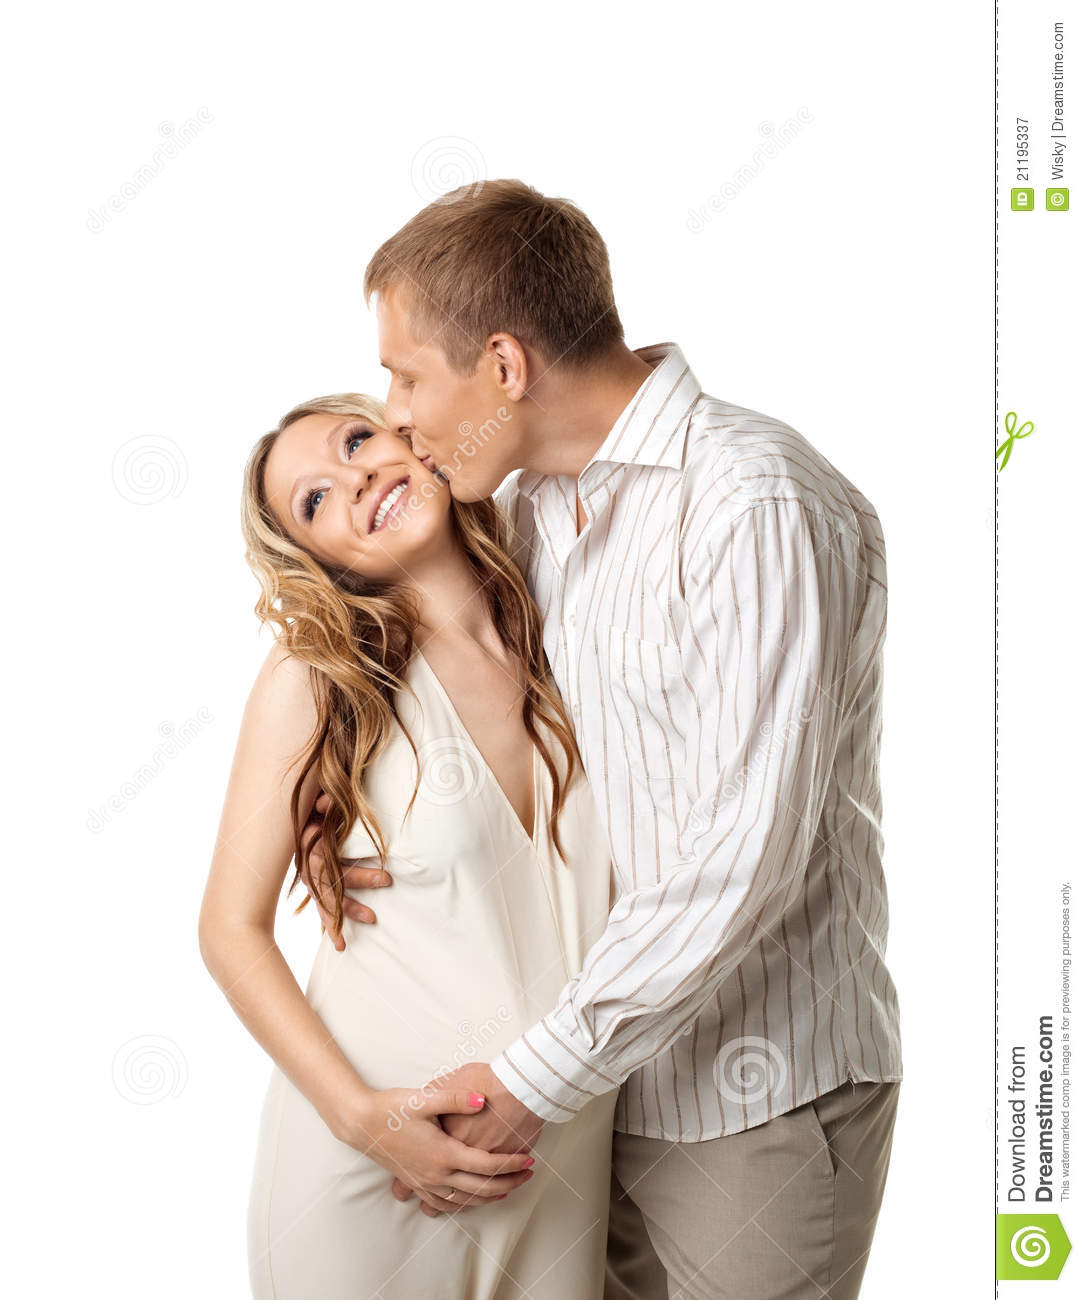 Young couple in white wait for baby kiss a whife